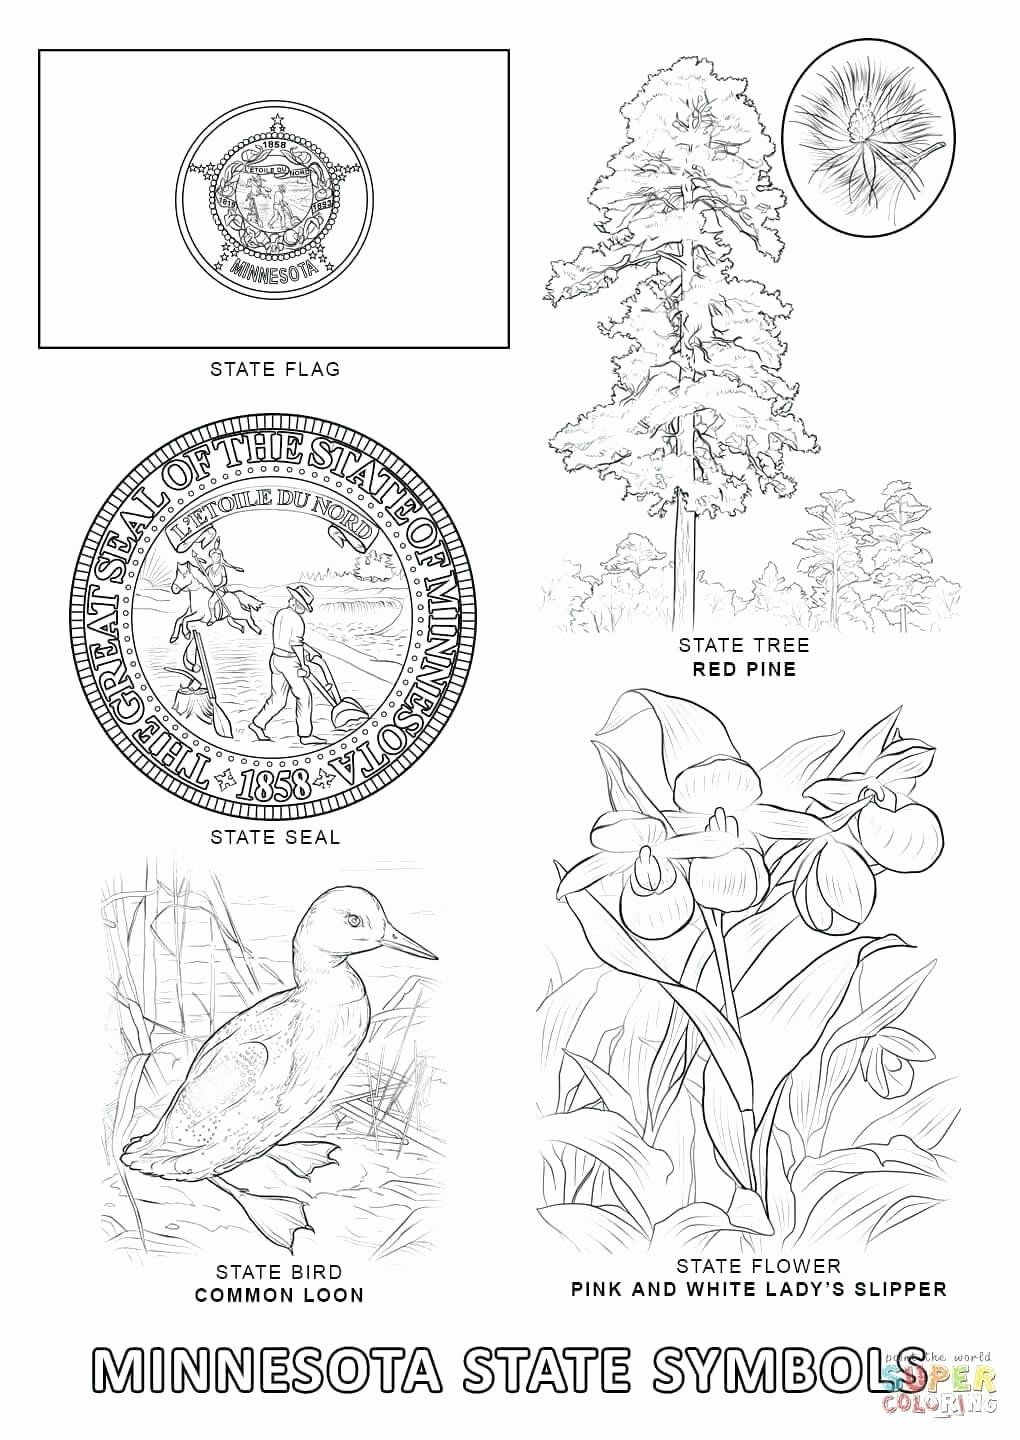 Texas State Bird Coloring Page Luxury Minnesota State Bird Coloring Pages Awesome 156 Best U S Bird Coloring Pages Coloring Pages Tree Coloring Page